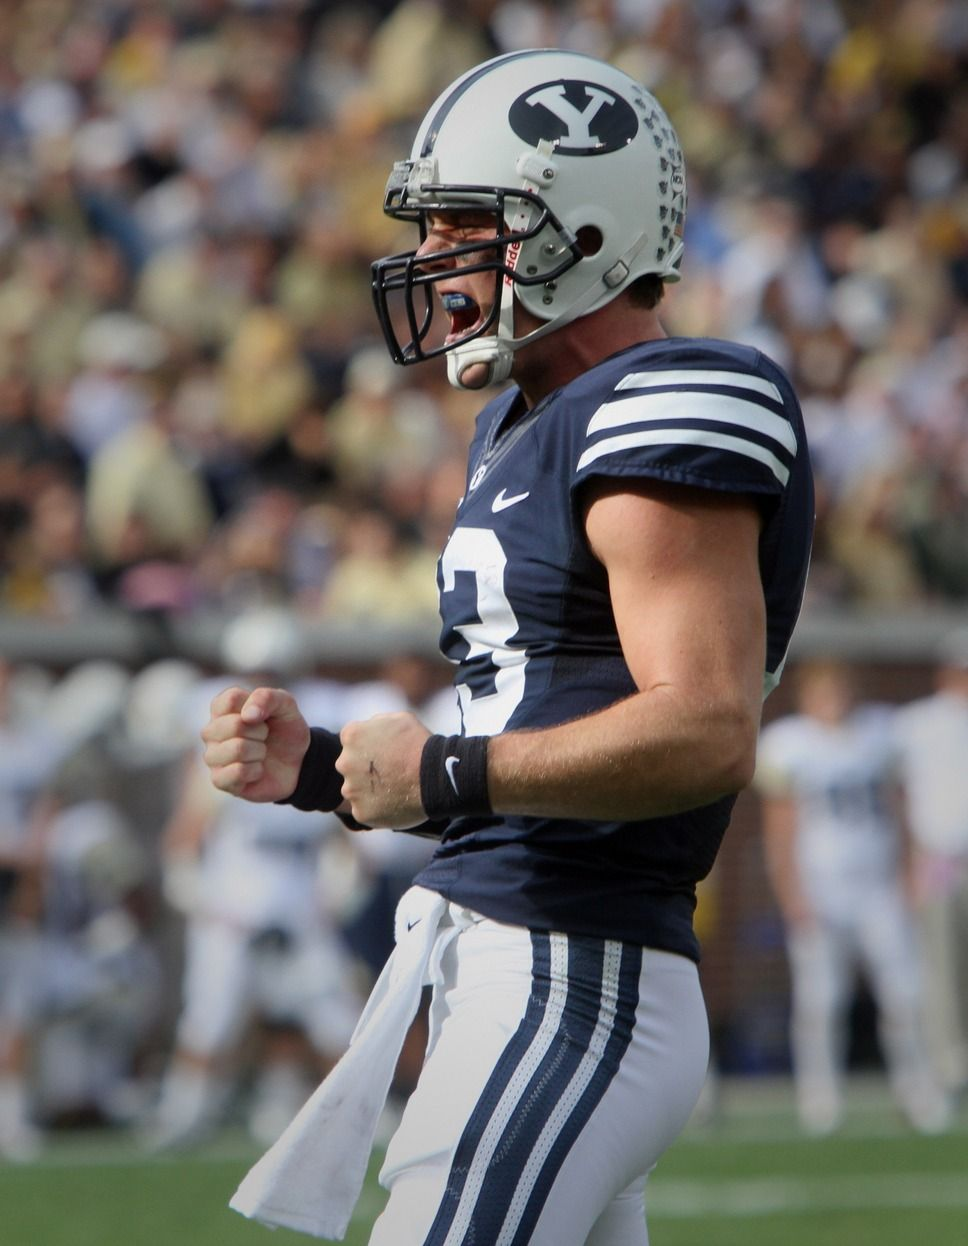 BYU football Defense shines again as Cougars quiet